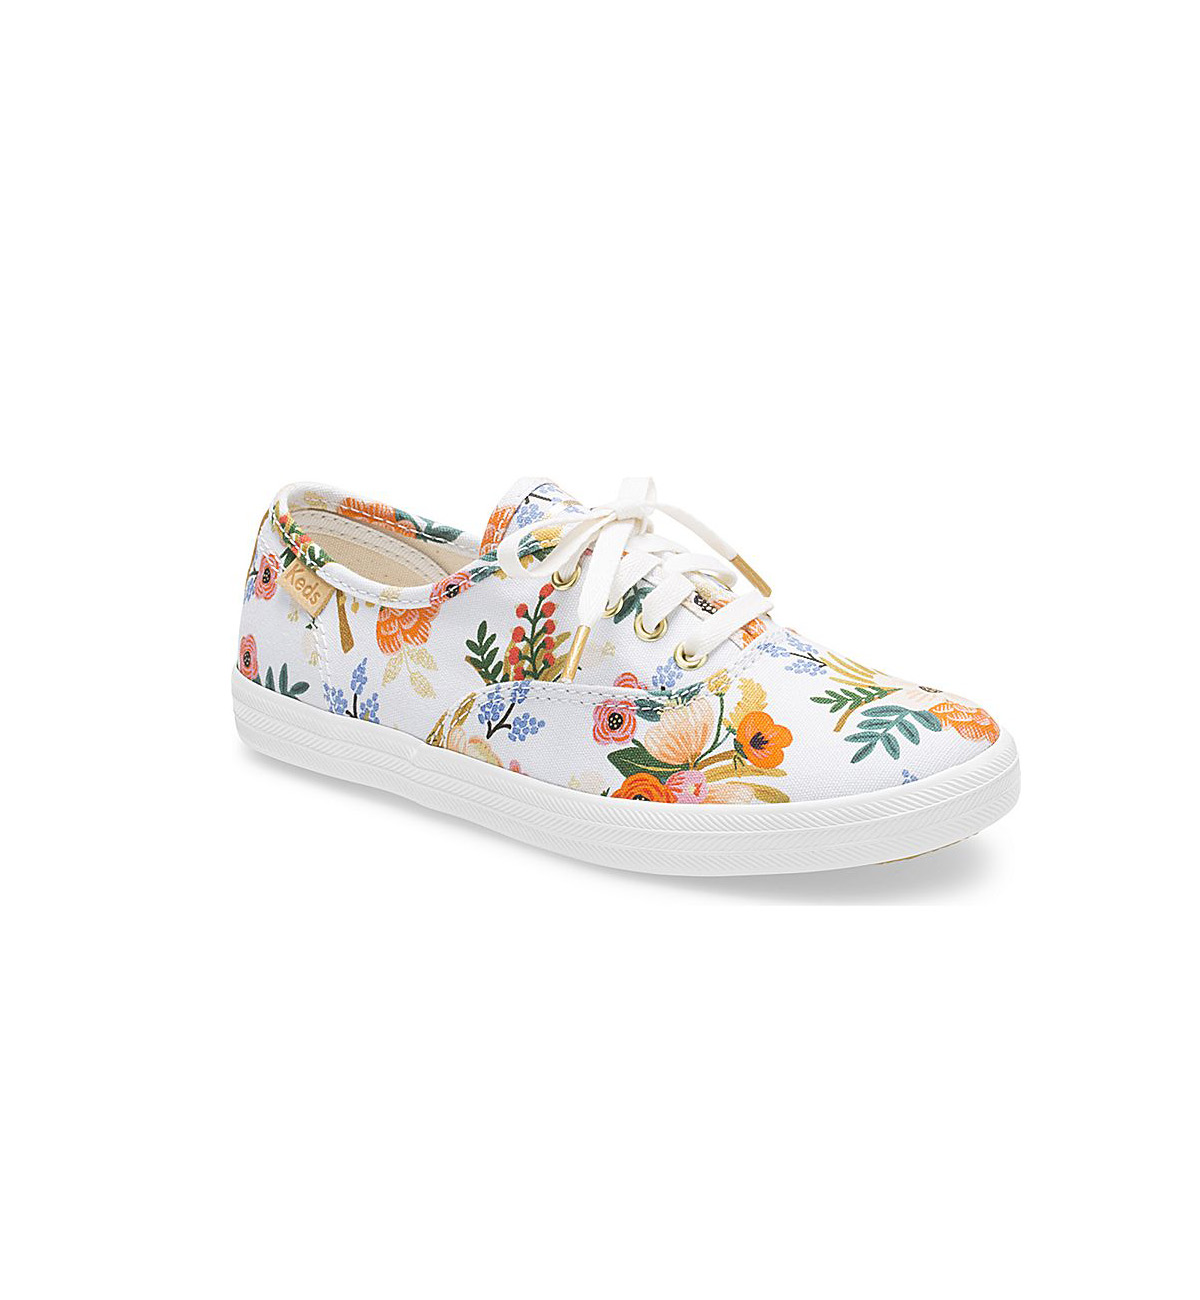 Champion Lively Floral sneakers